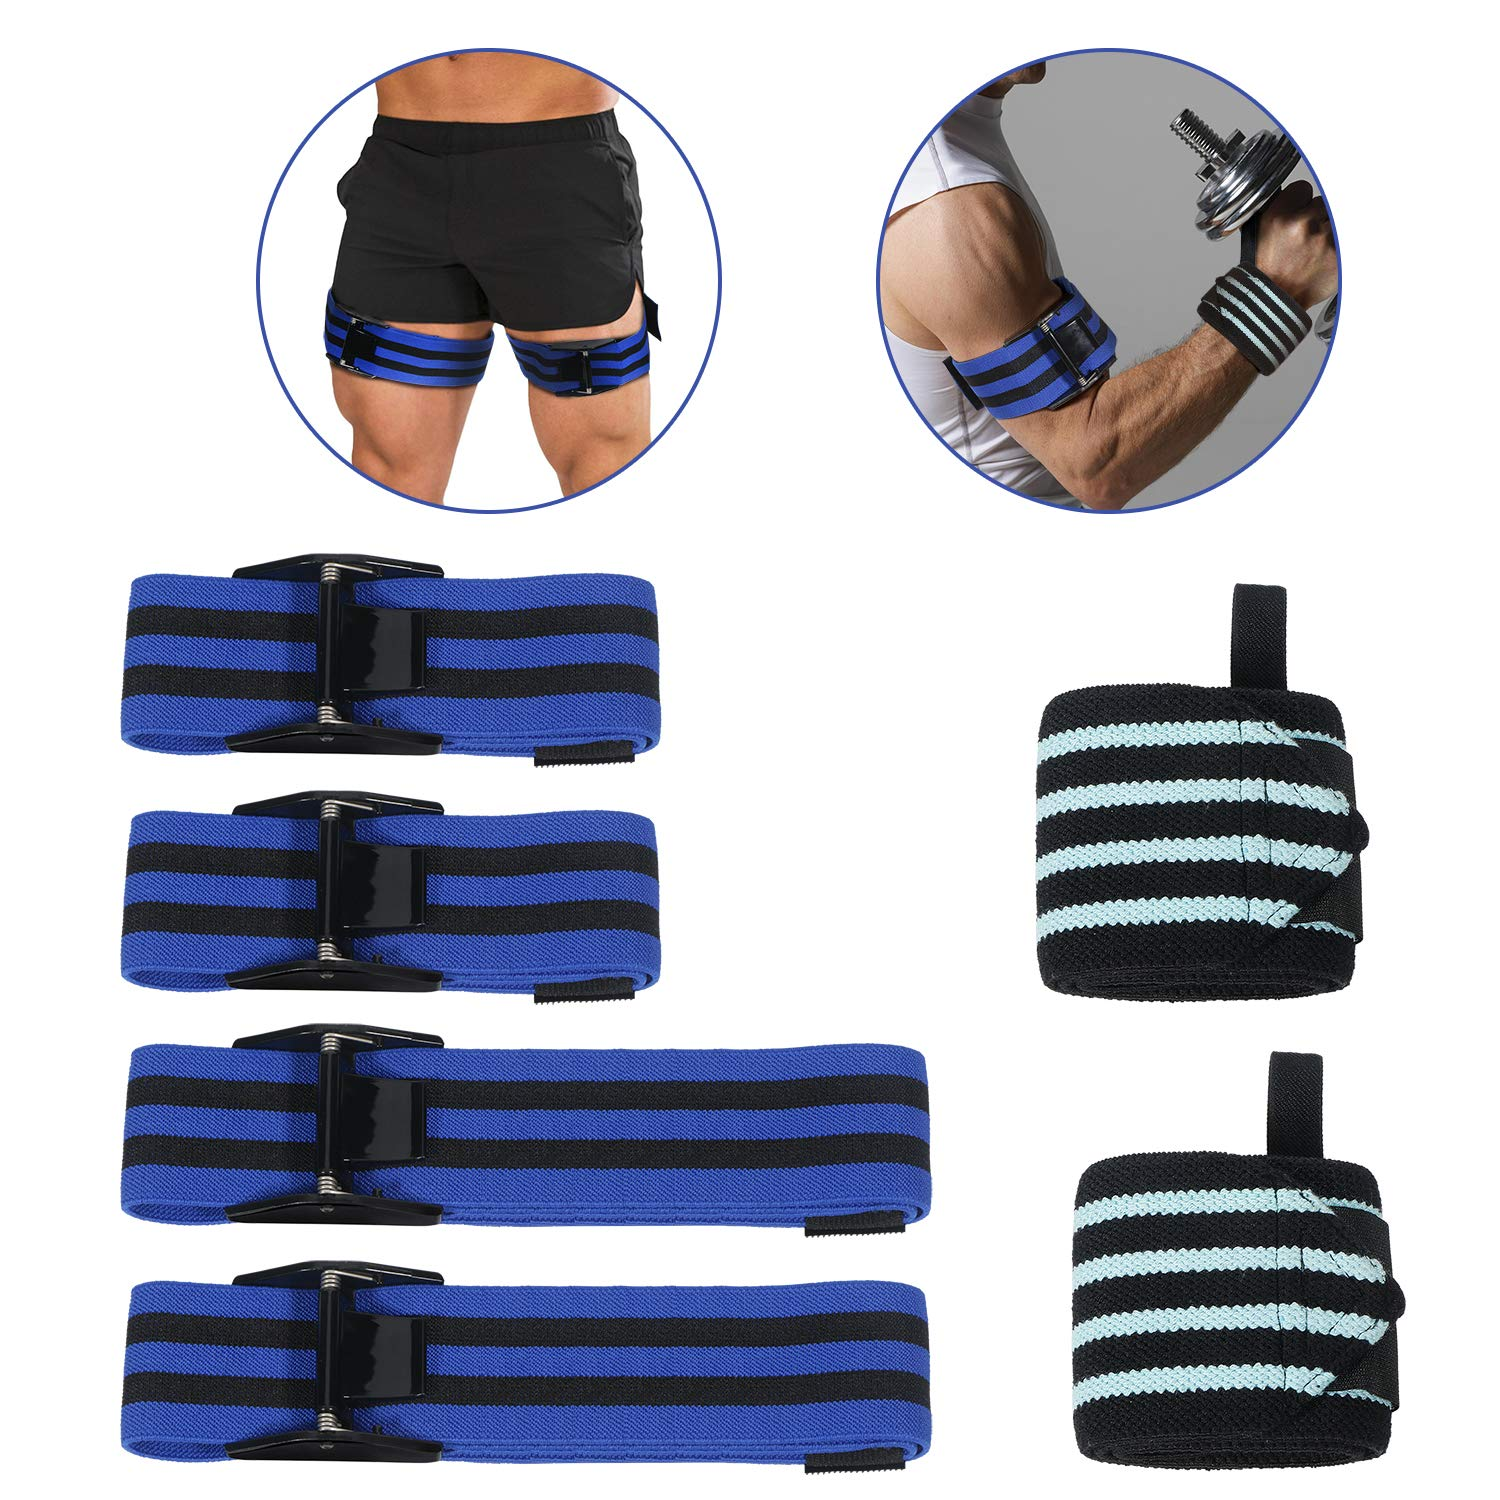 LC-dolida Occlusion Training Bands, Bands for BRF Bodybuilding Weight Blood Flow Restriction Bands Arm Leg Wraps Fast Muscle Growth Gym Equipment, Quick Release